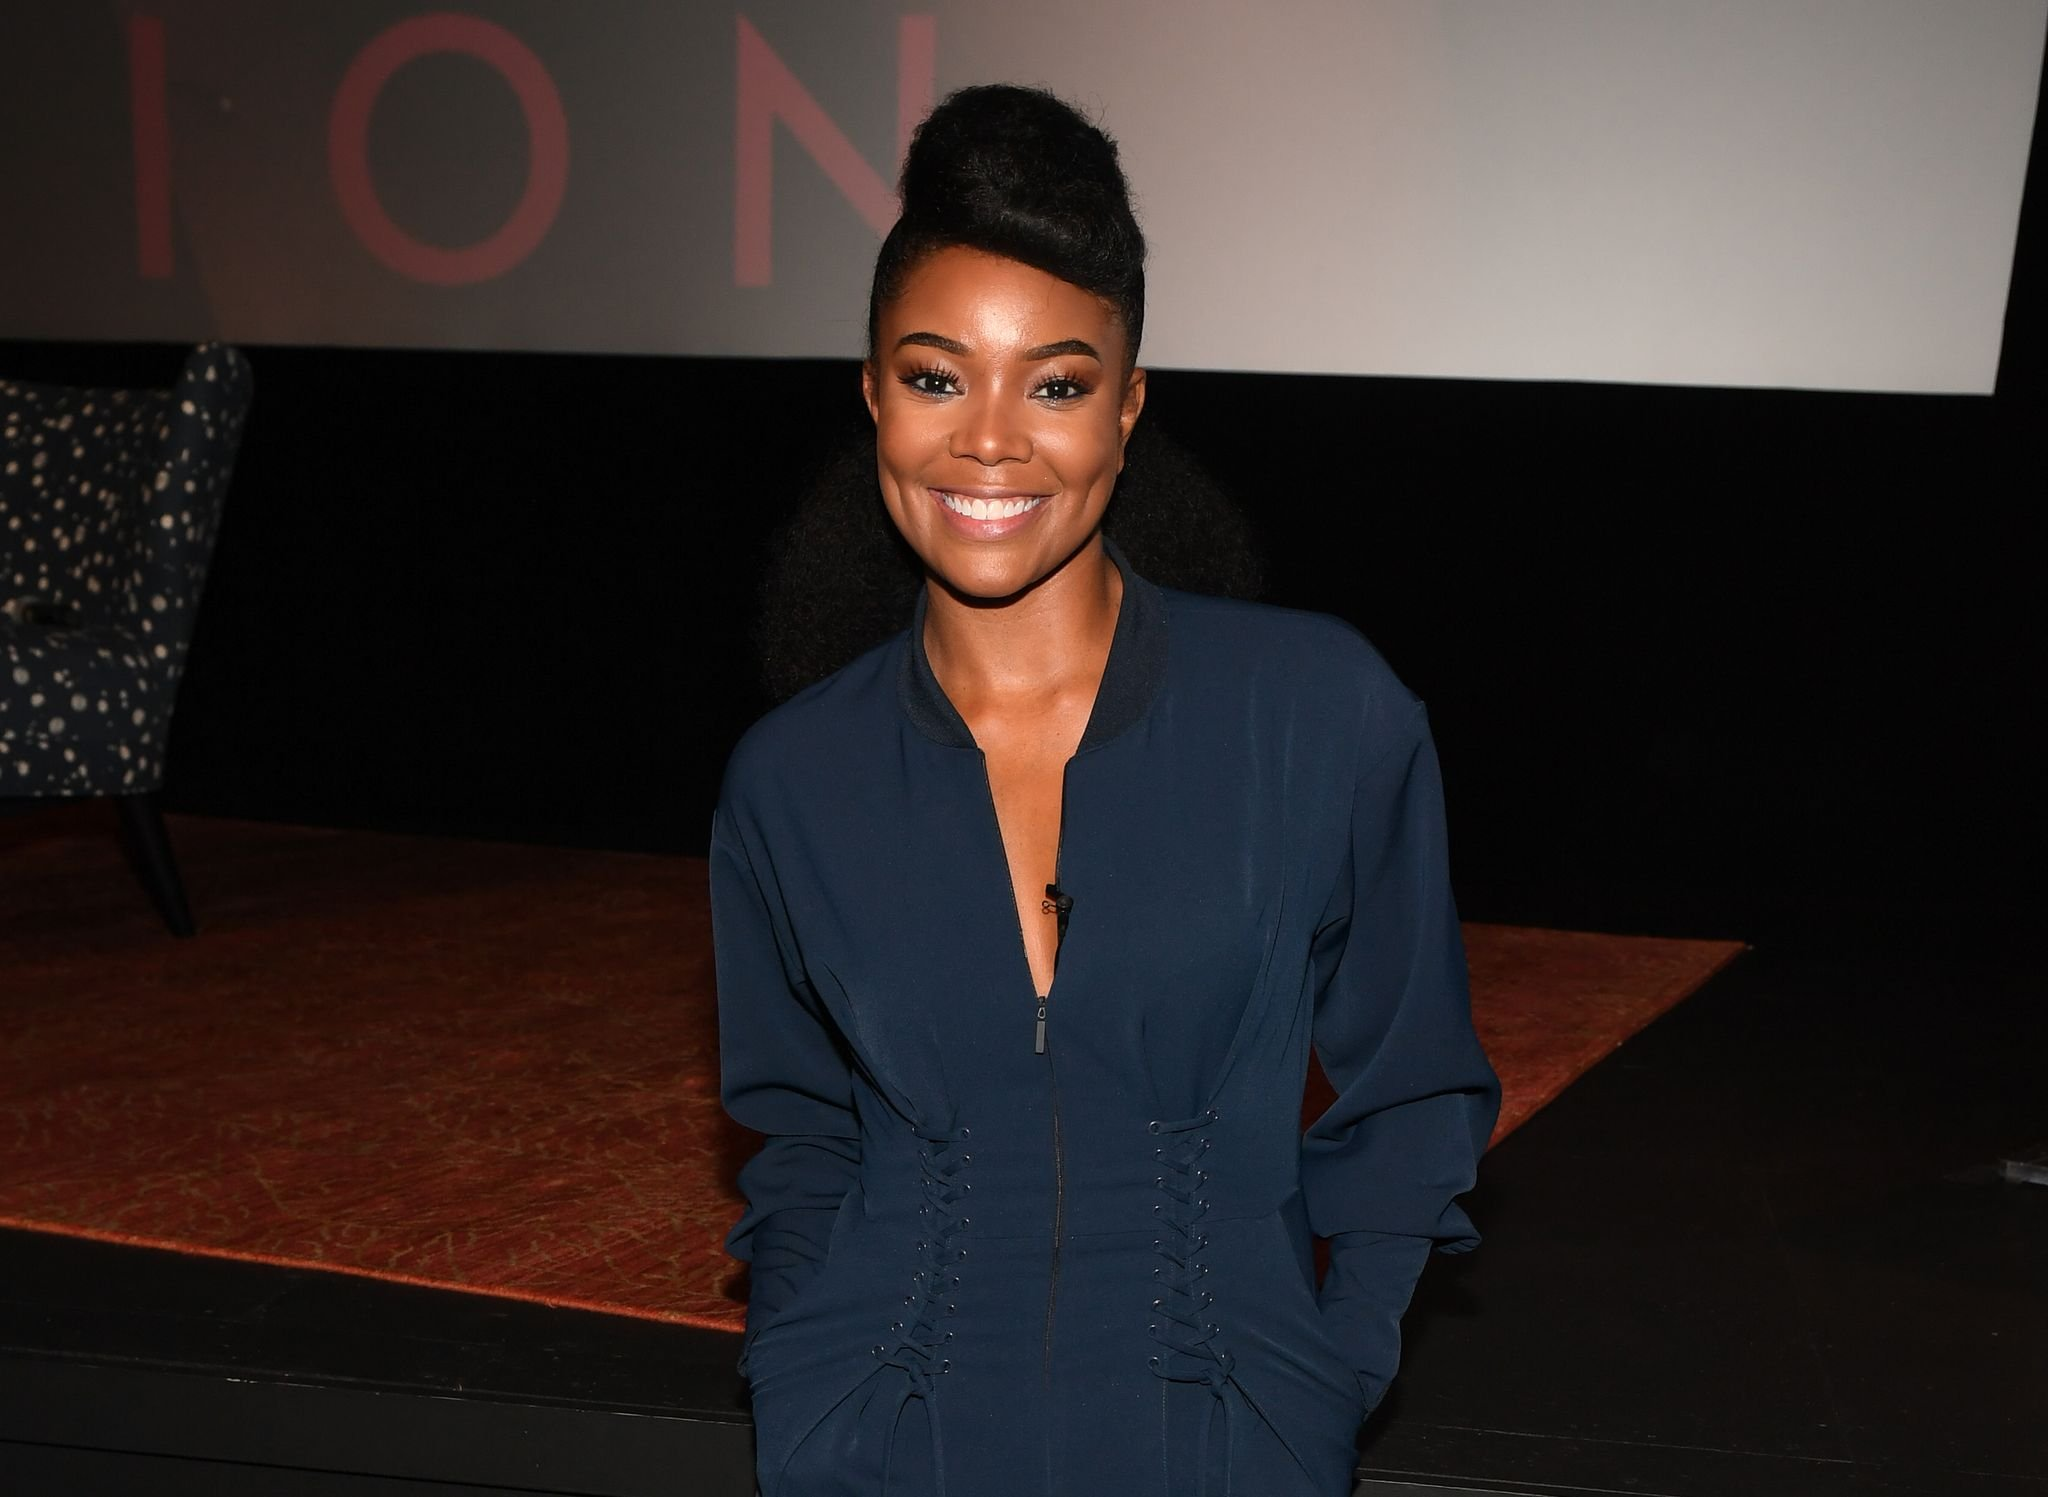 Gabrielle Union promotes her book at SCADshow on October 20, 2017 in Atlanta. | Photo: Getty Images